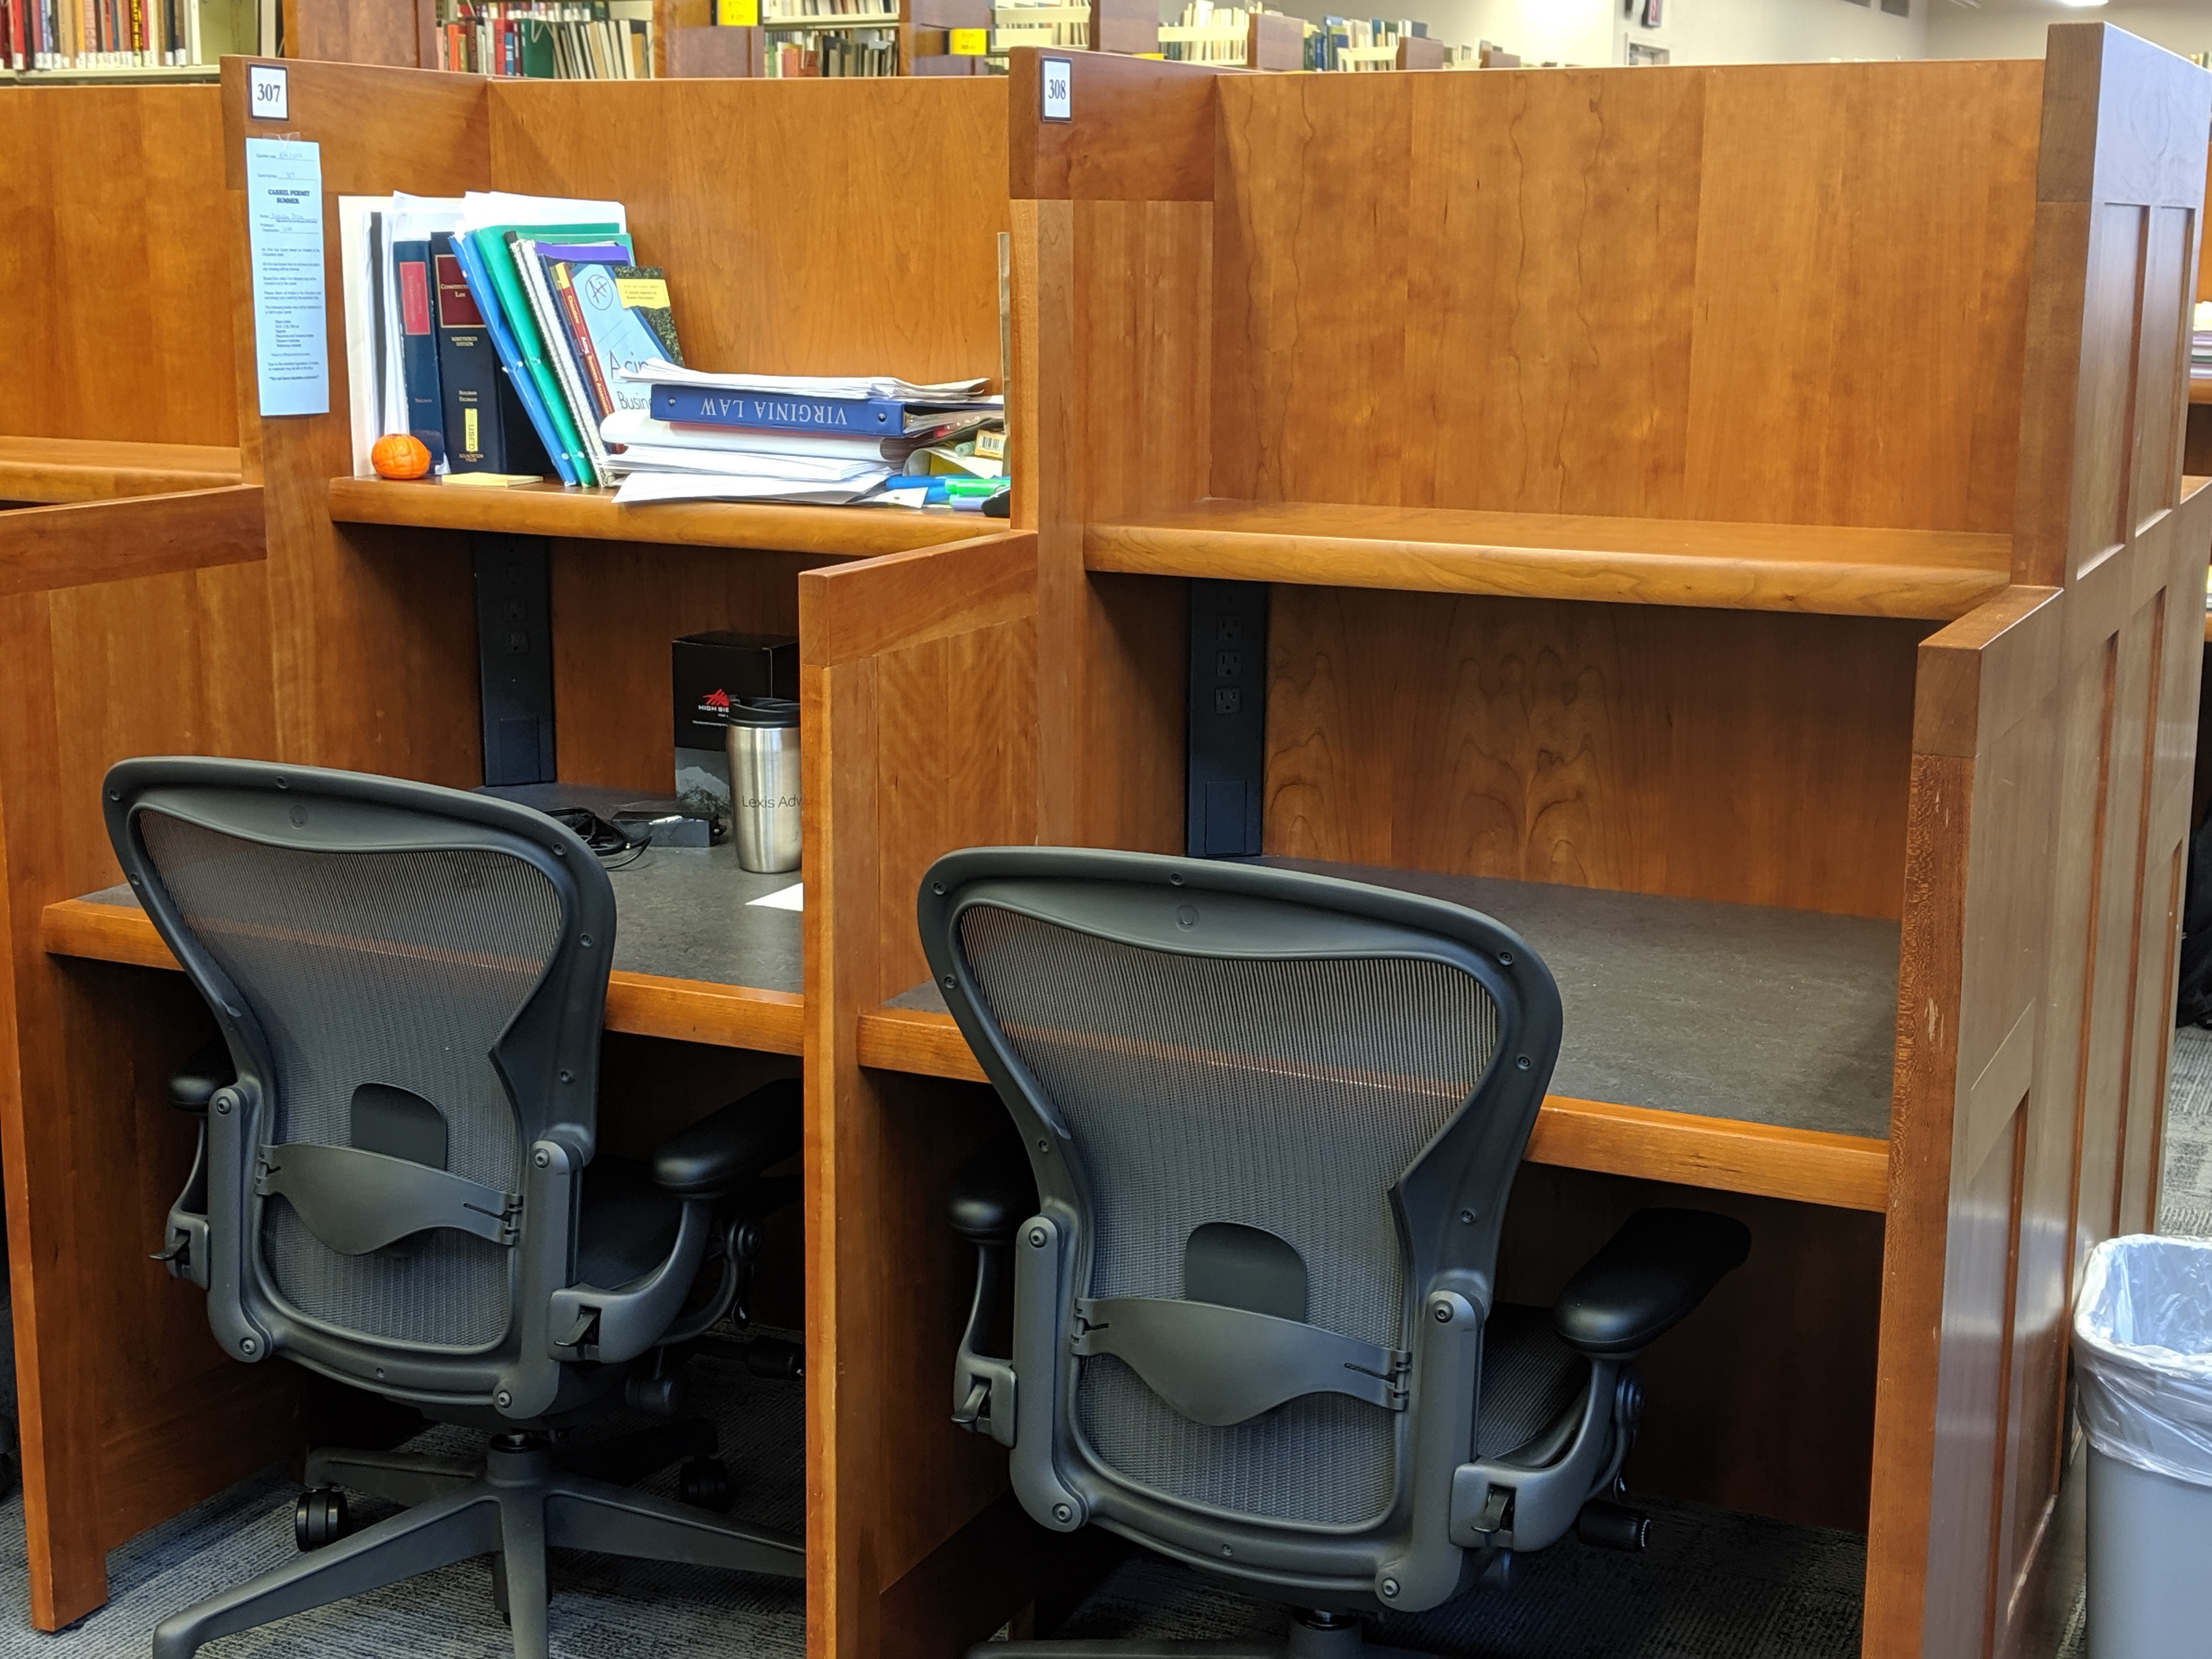 Two carrels, one in use